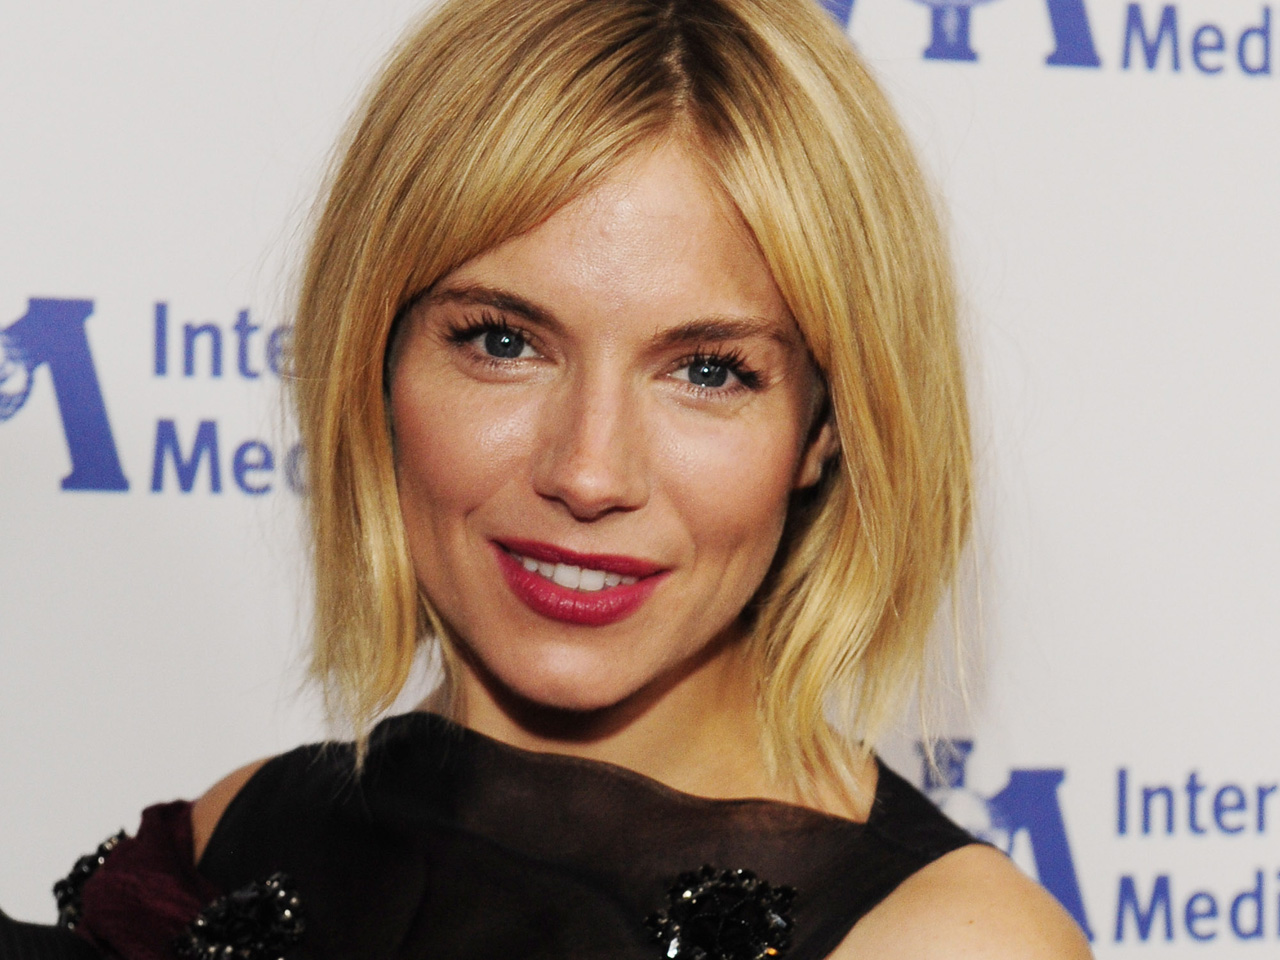 Sienna Miller (born 1981 (born in New York City nudes (37 pictures) Ass, Twitter, braless